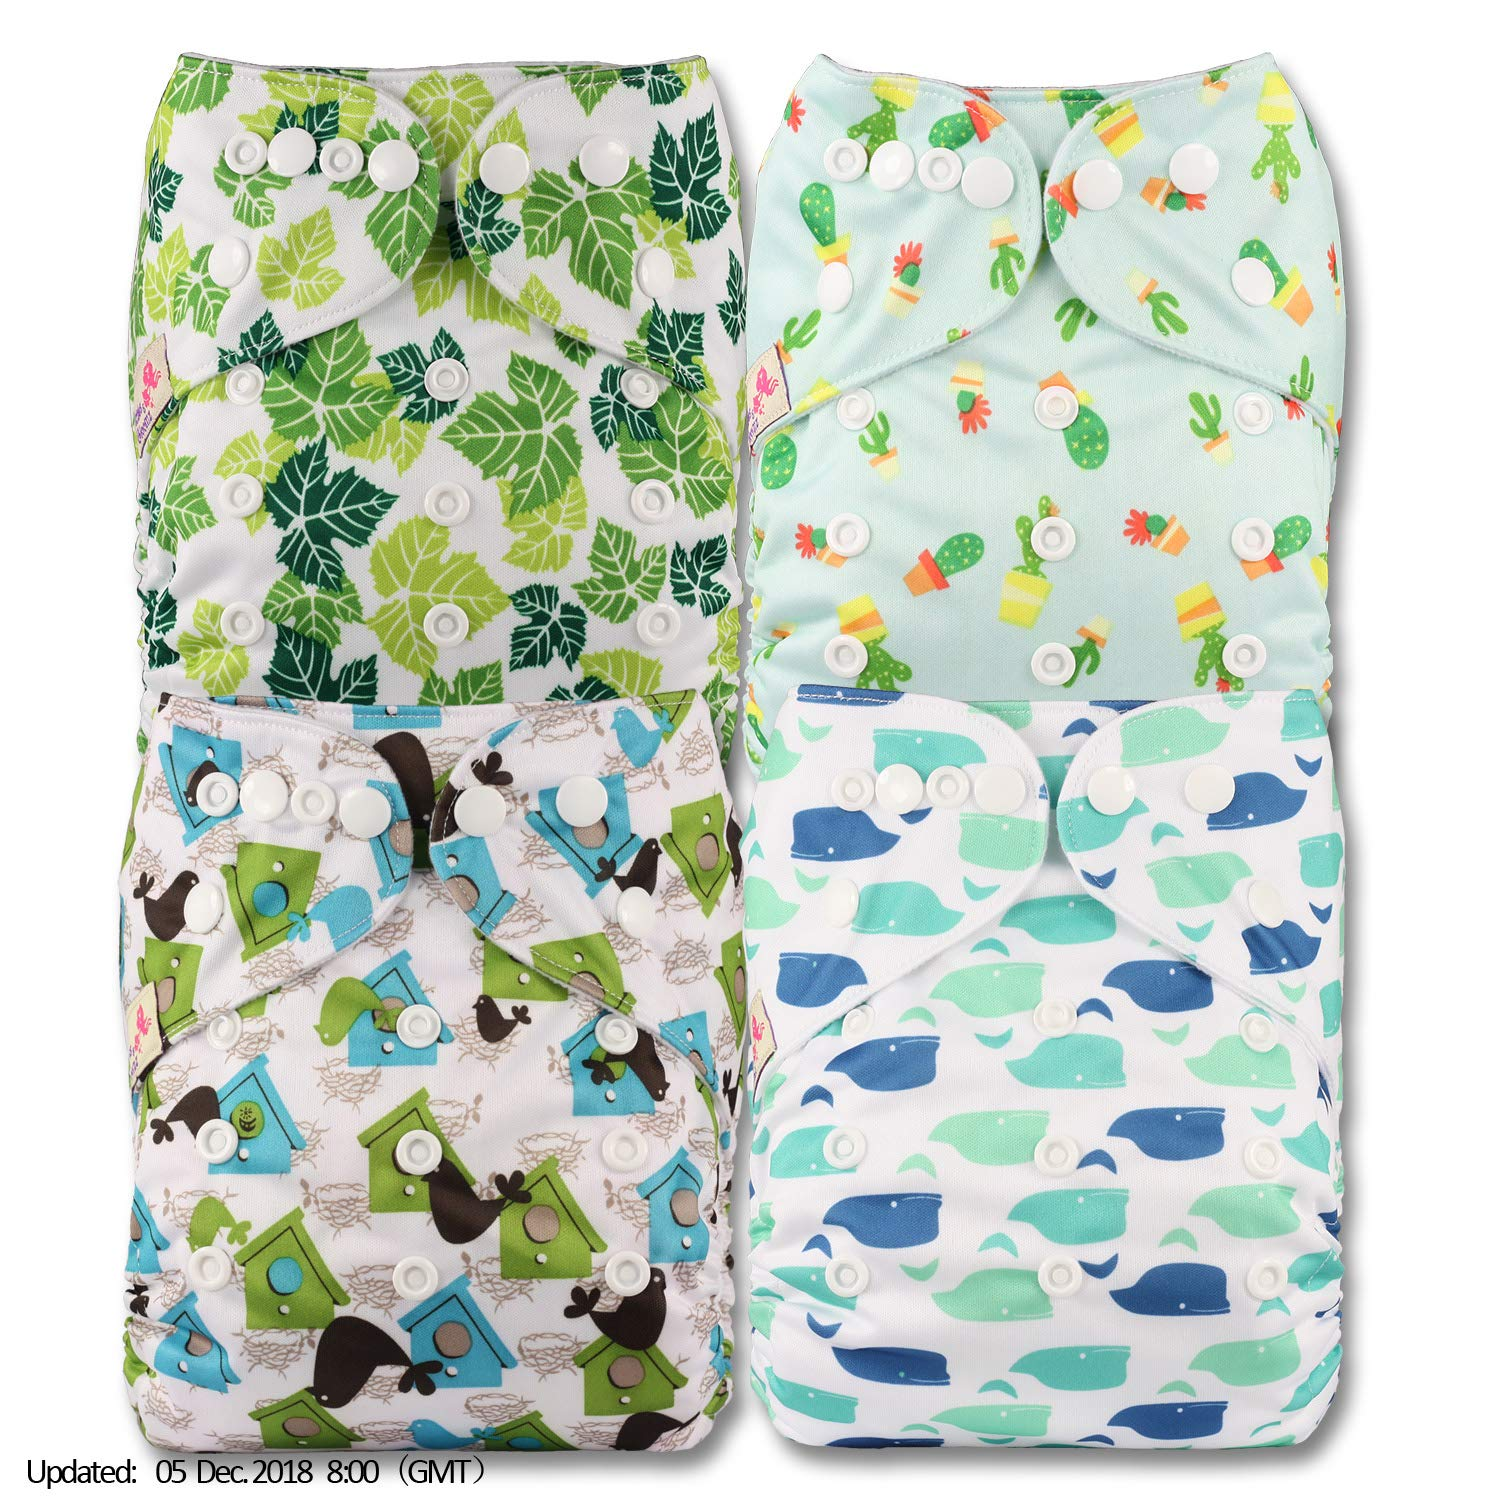 with 1 Bamboo Charcoal Insert Reusable Pocket Cloth Nappy Littles /& Bloomz Fastener: Popper Set of 1 Pattern 2